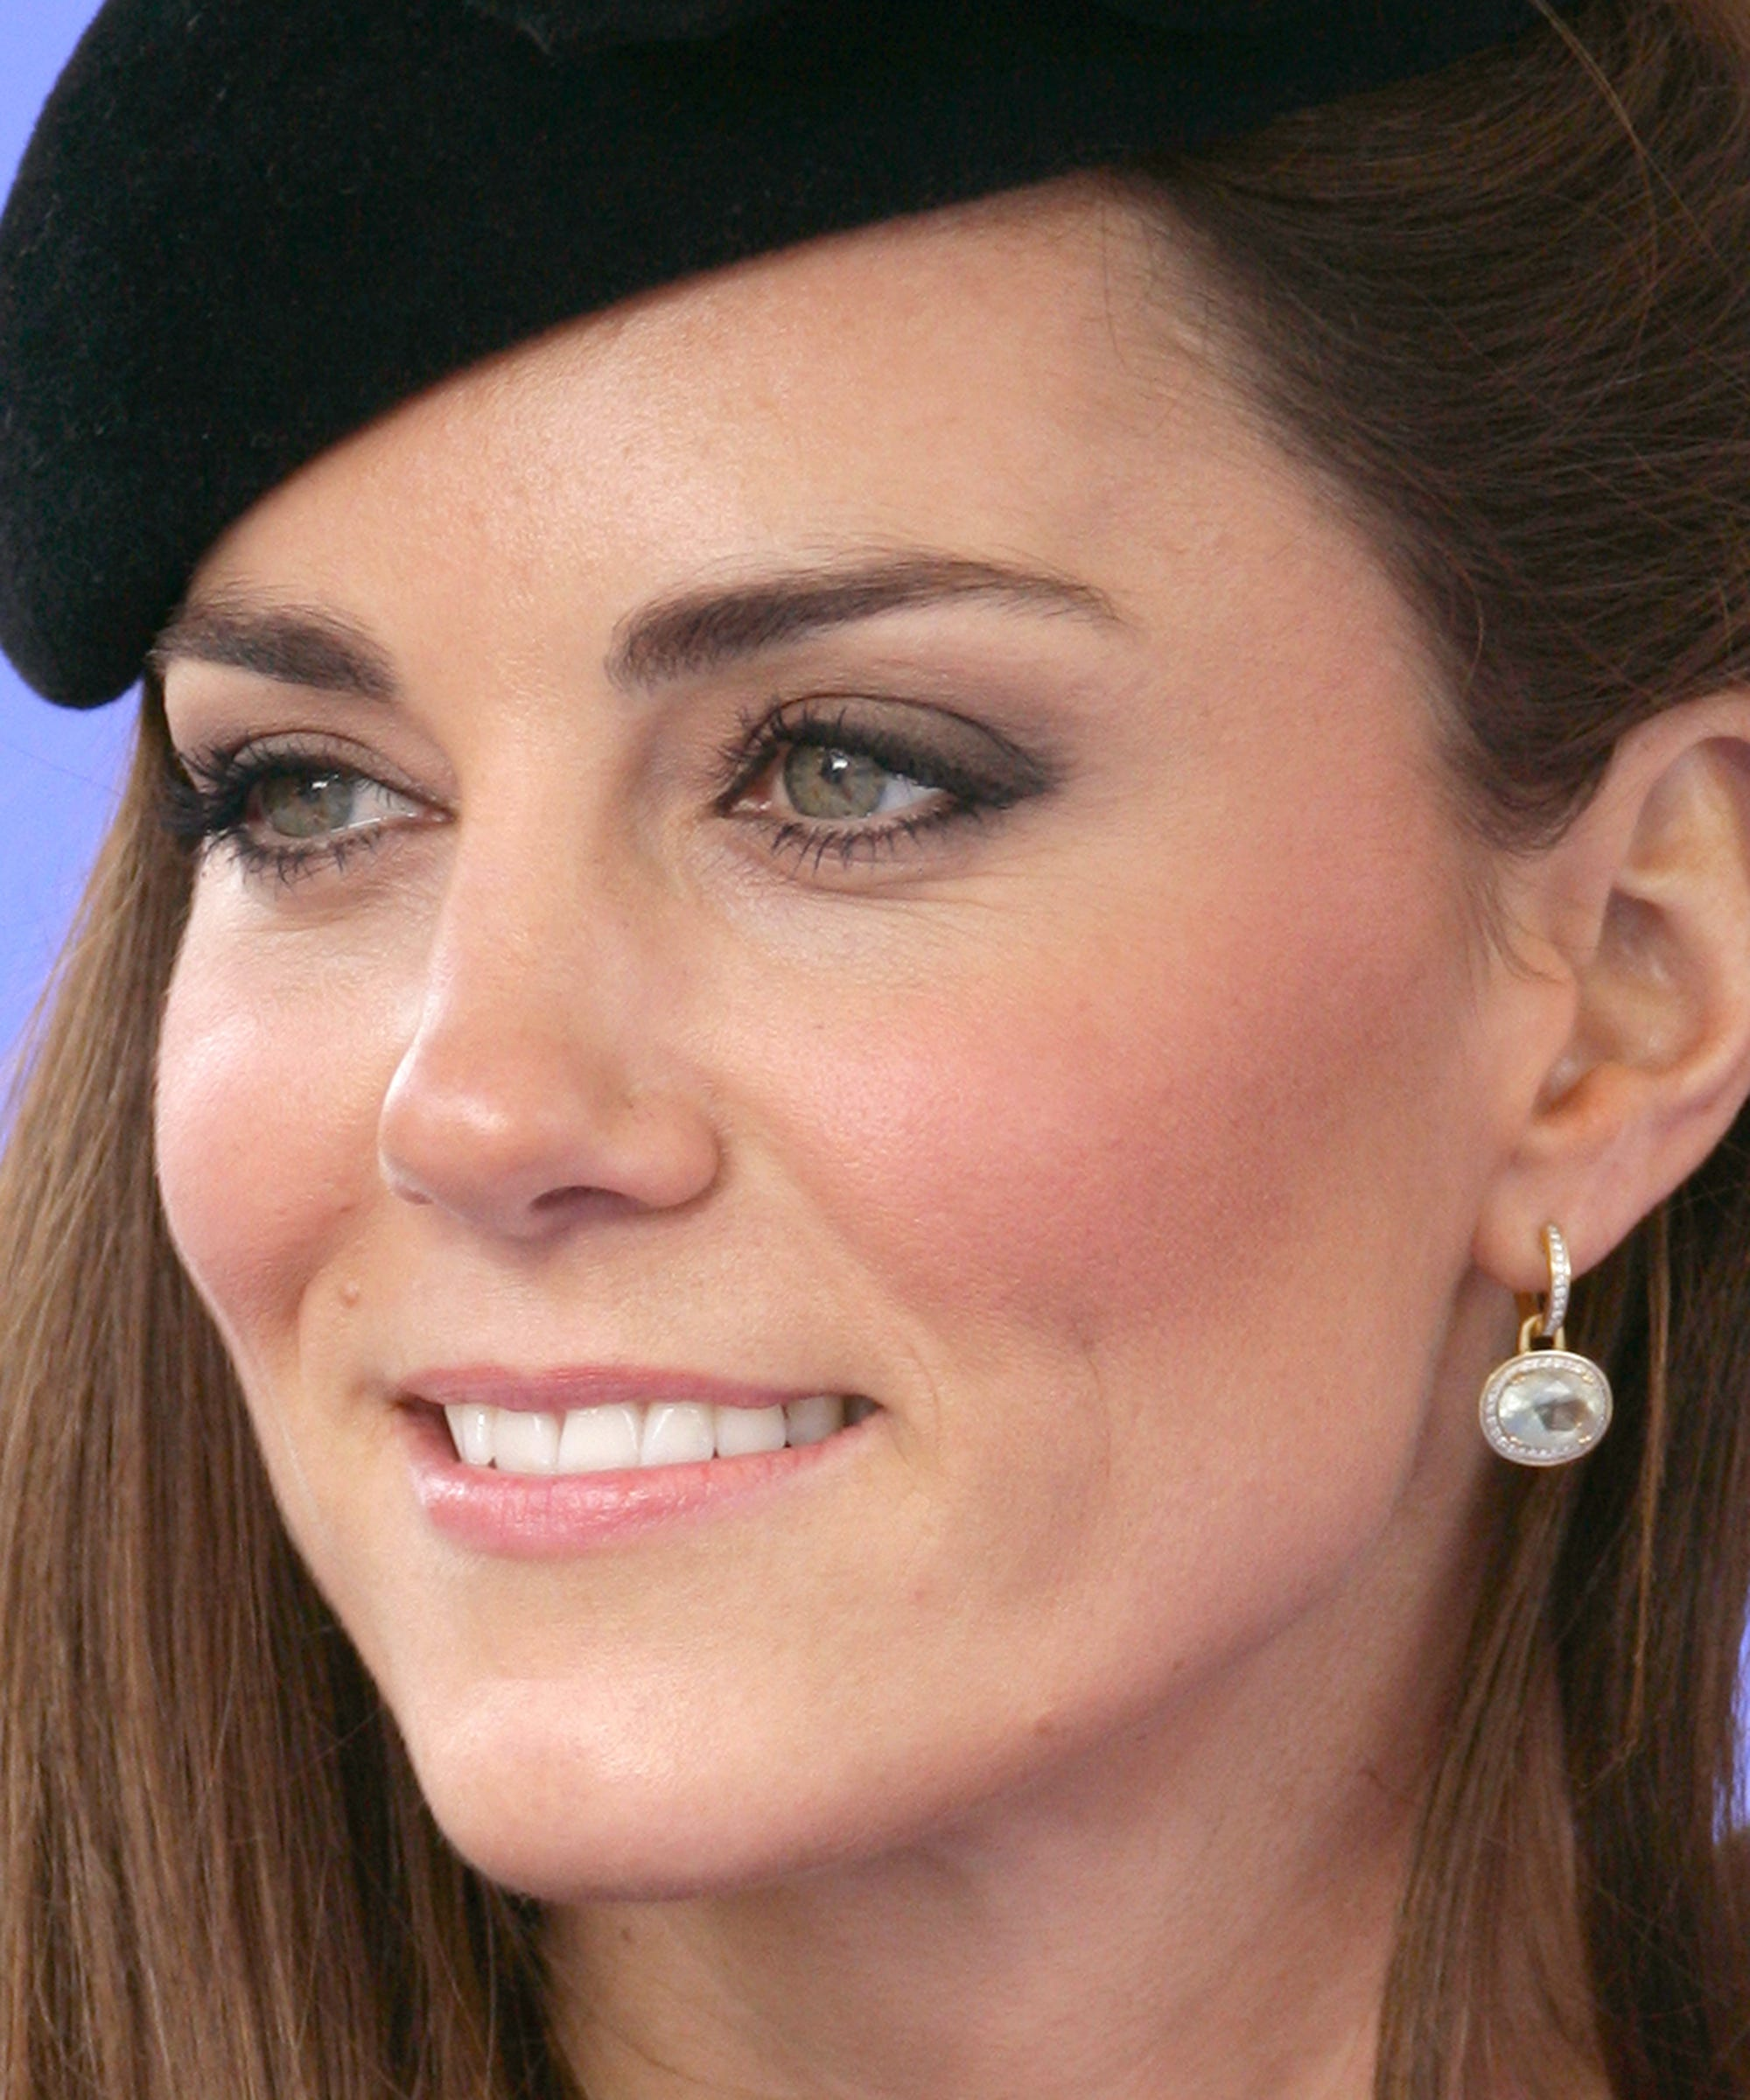 The Hair And Makeup Looks Kate Middleton Always Wears 3 Way Switch Make Up